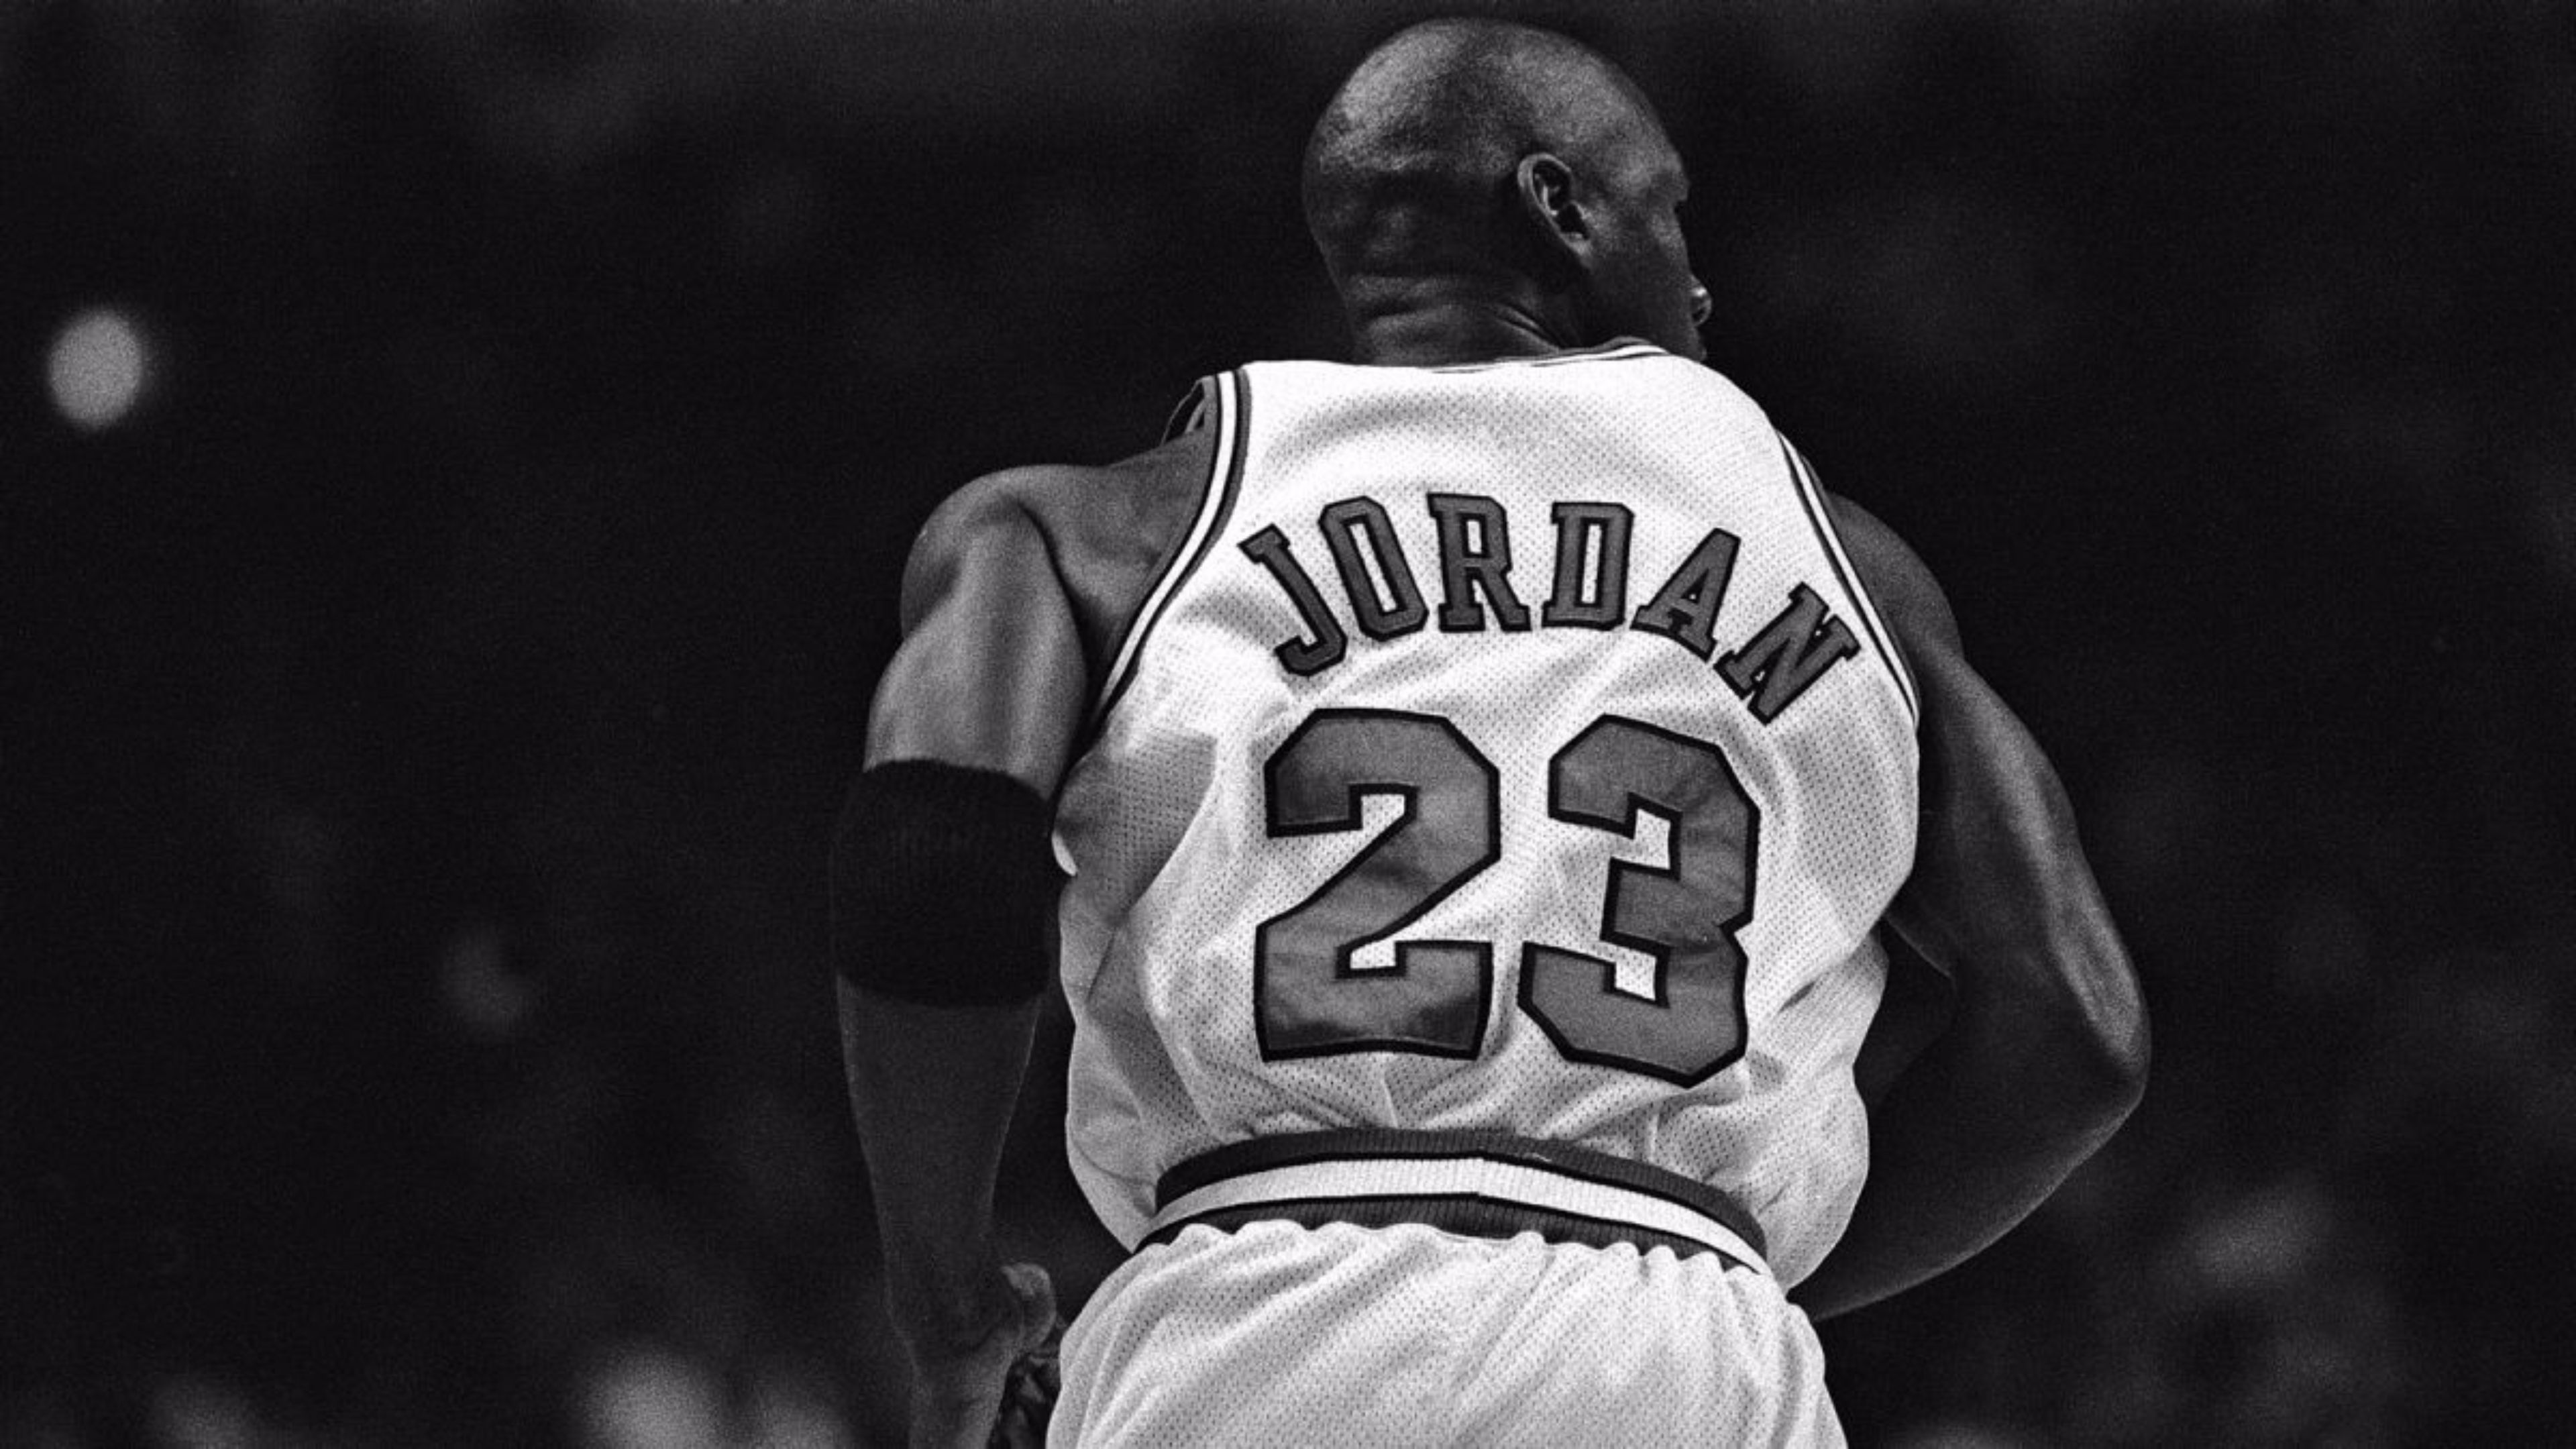 Best Wallpapers Hd Collection: Michael-Jordan-HD-Wallpapers-Desktop-new-collection-4